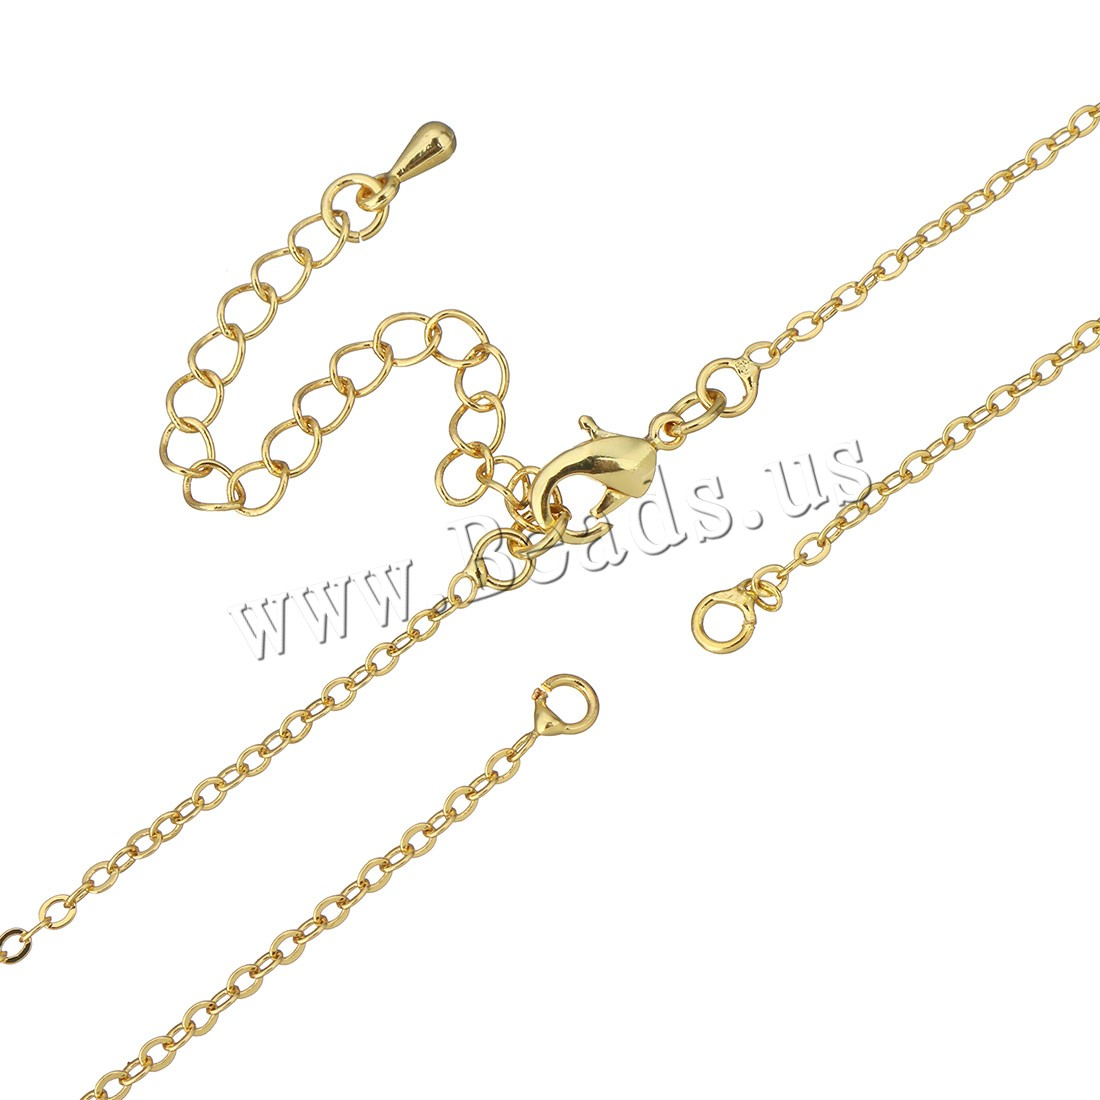 Buy Brass Necklace Findings 2.5Inch extender chain real gold plated oval chain 2.50x2x0.50mm Length:Approx 17 Inch 50Strands/Bag Sold Bag